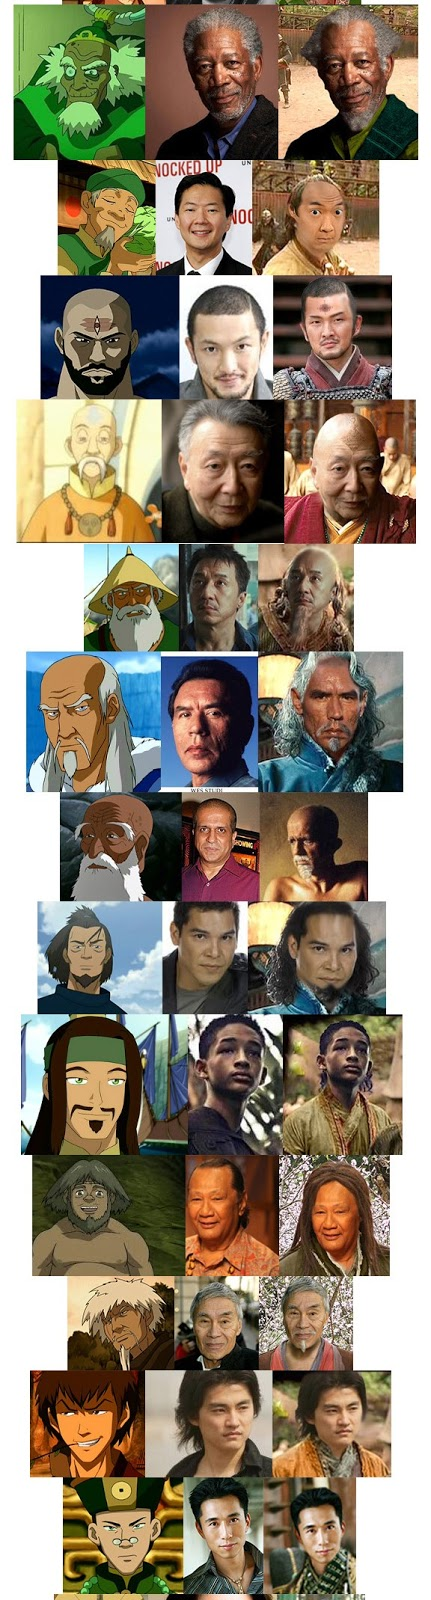 Basically A Fancast For Avatar The Last Airbender There Are Pics Of Characers Then My Pic Actors And Finally Photoshop Version Enjoy